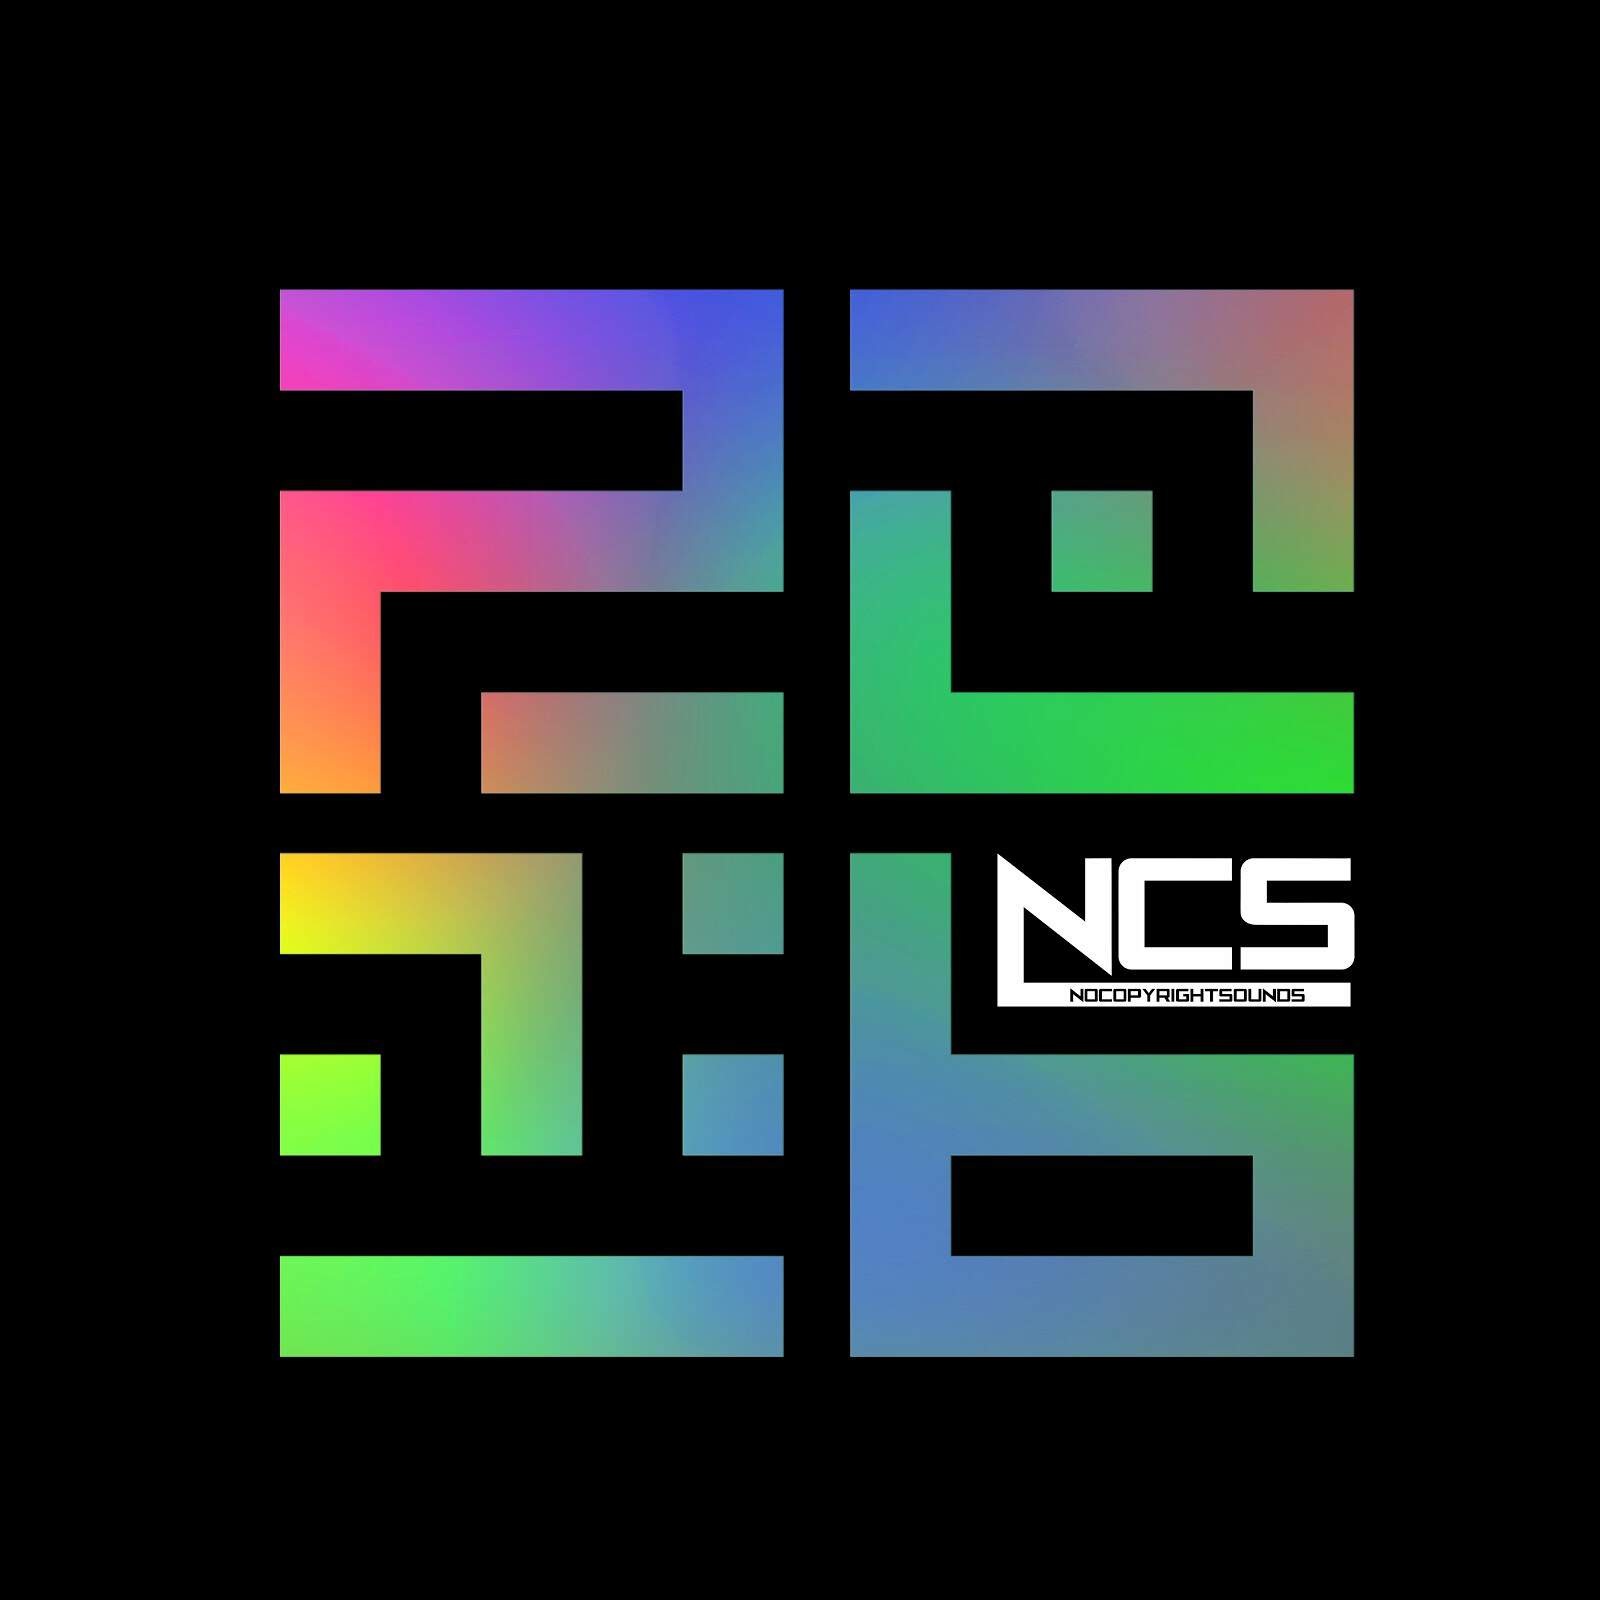 NCS: The Best of 2016' [NCS]